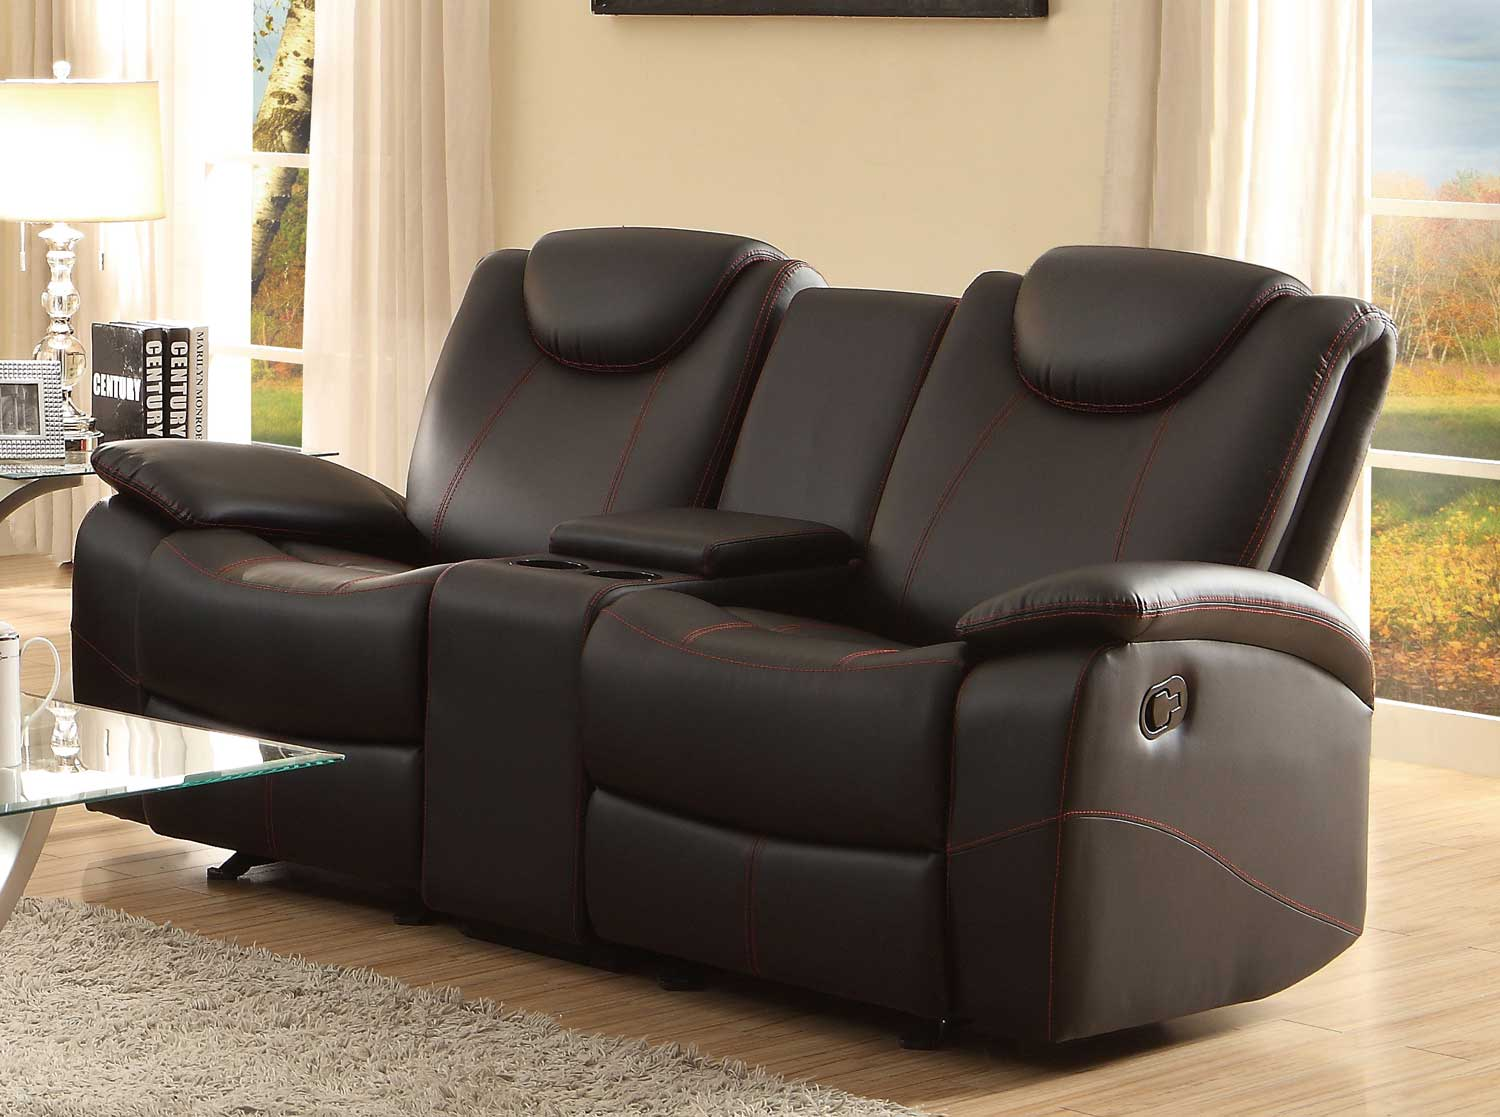 talbot double glider reclining love seat with center console black bonded leather - Black Leather Loveseat